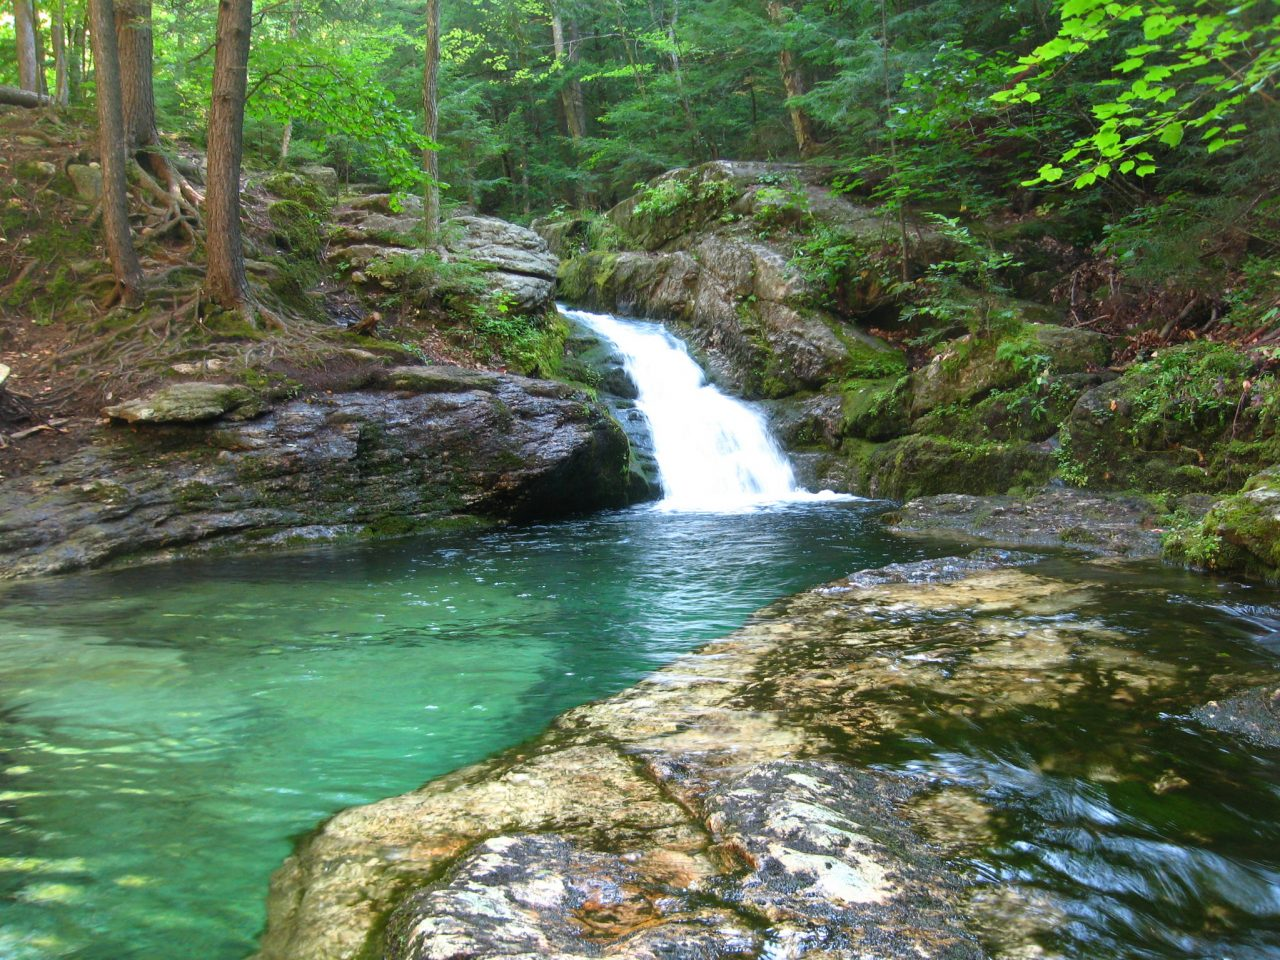 Rattlesnake Pool, this emerald pool near Bethel in Evan's Notch, is only accessible by hike.